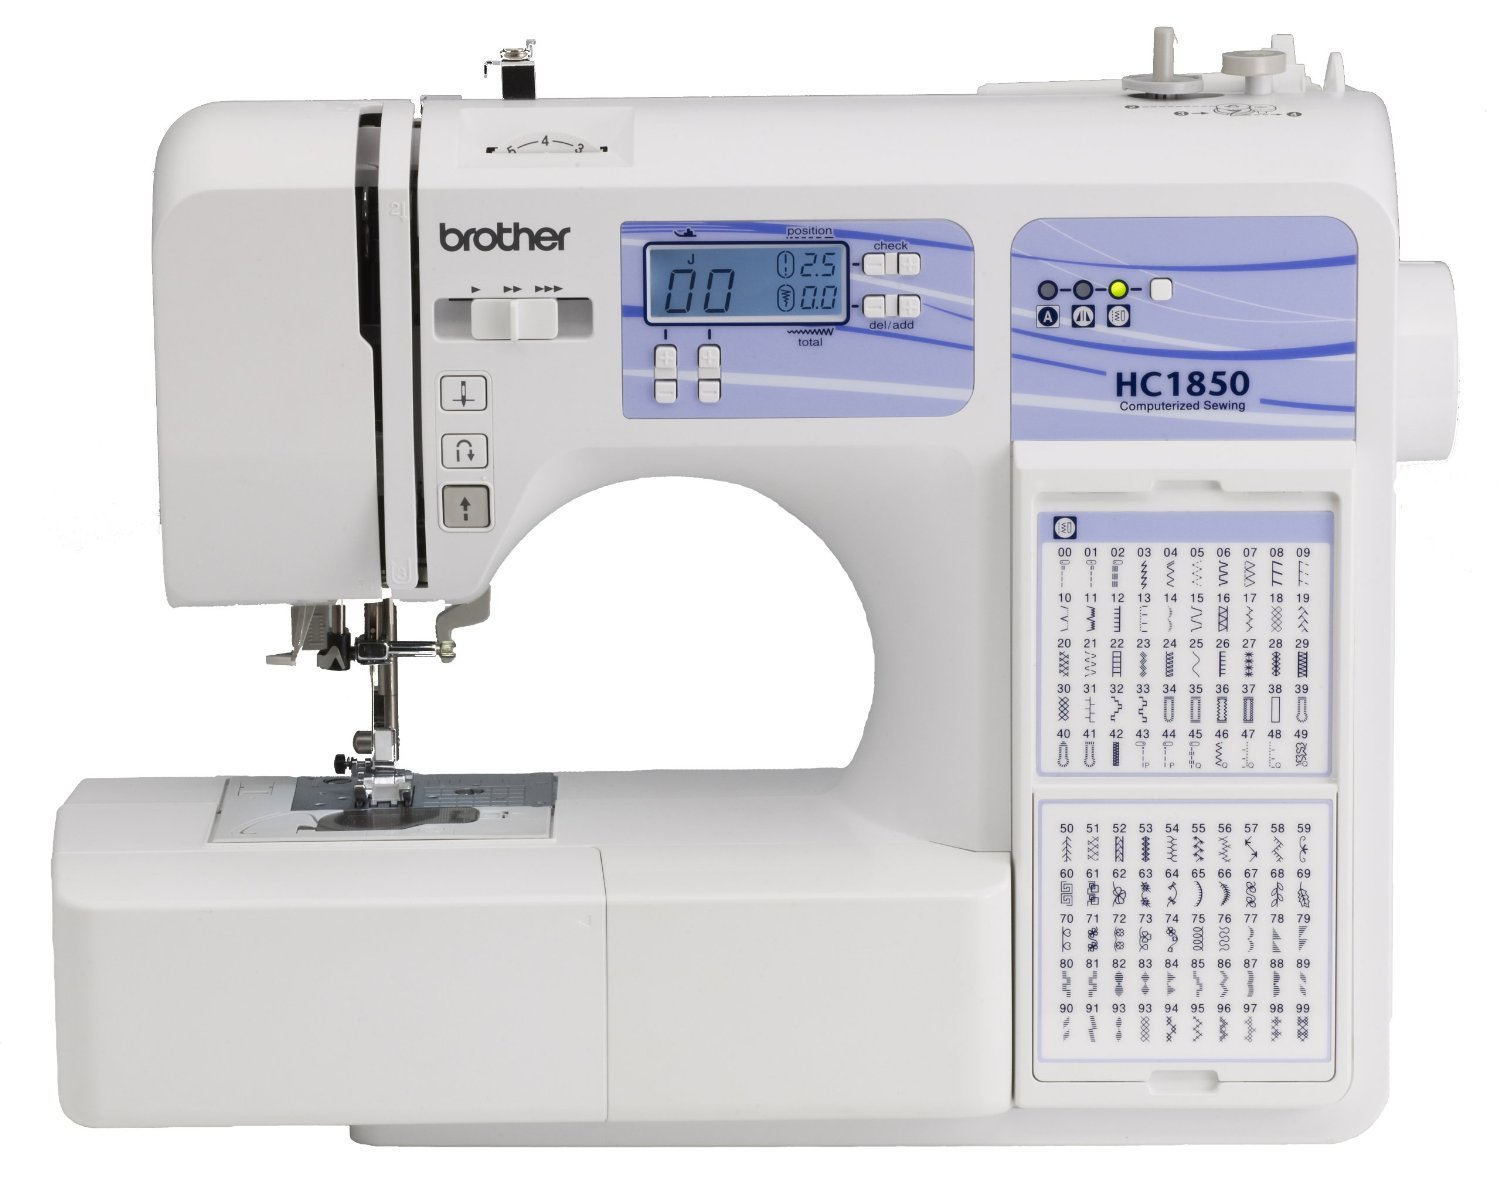 quilting stitches on sewing machine